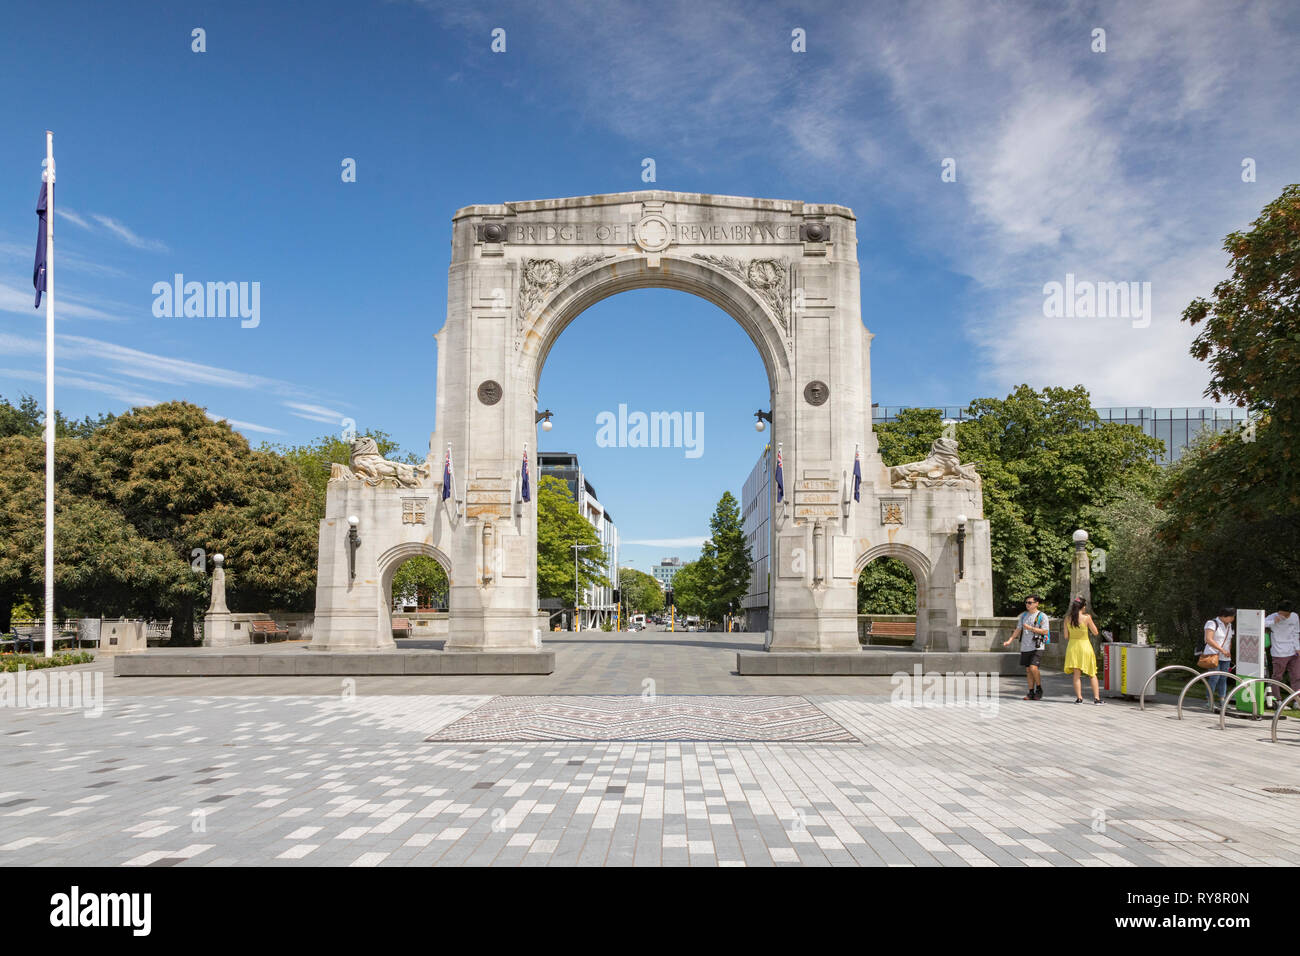 3 January 2019: Christchurch, New Zealand - The Bridge of Remembrance on Cashel Street in the centre of Christchurch. Stock Photo